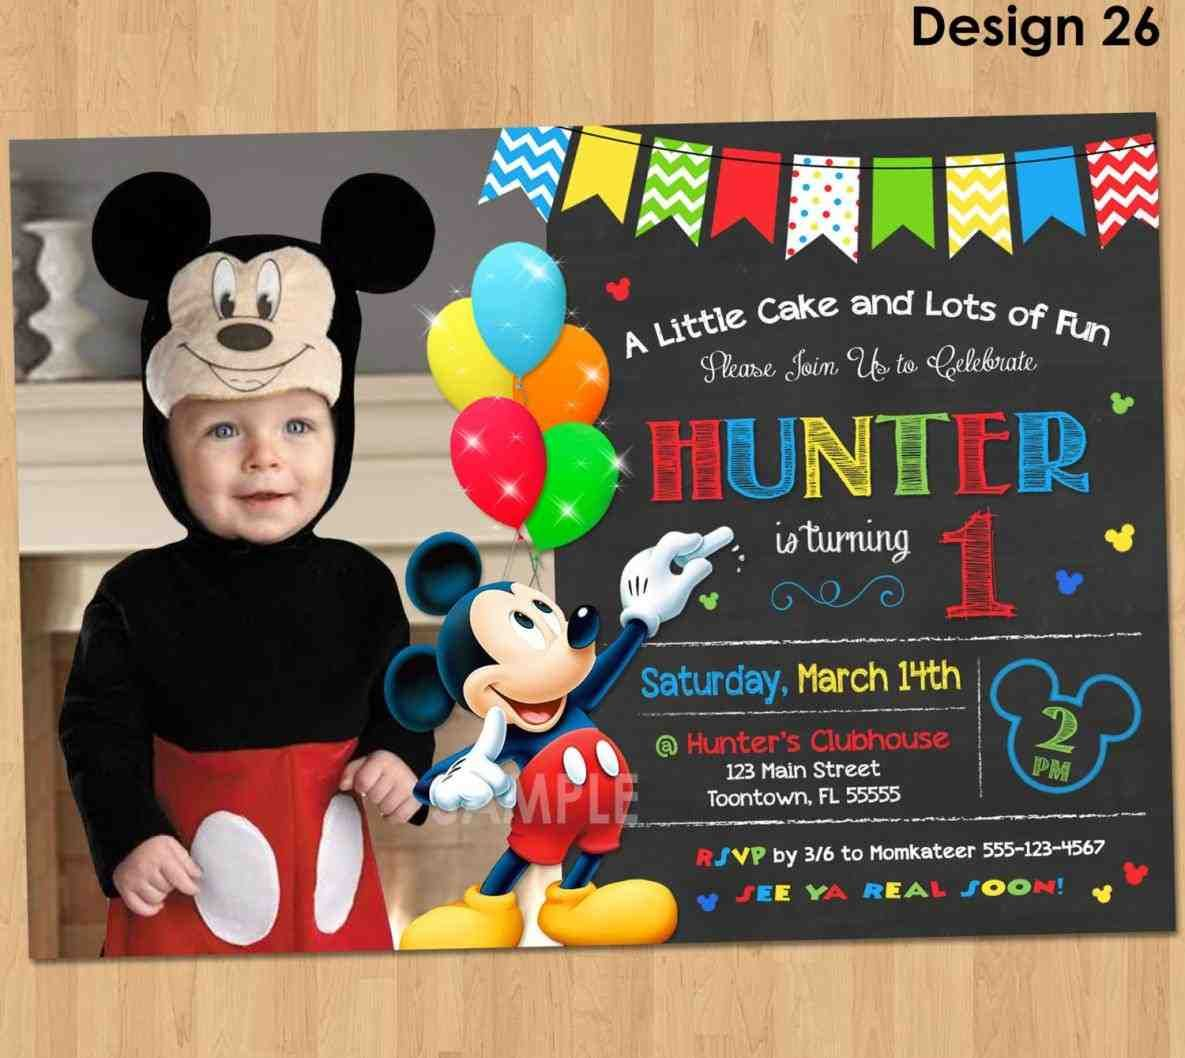 th 50th birthday invitation template birthday invitations free online file name wording cimvitation th 50th birthday appealing church invite cards 61 on